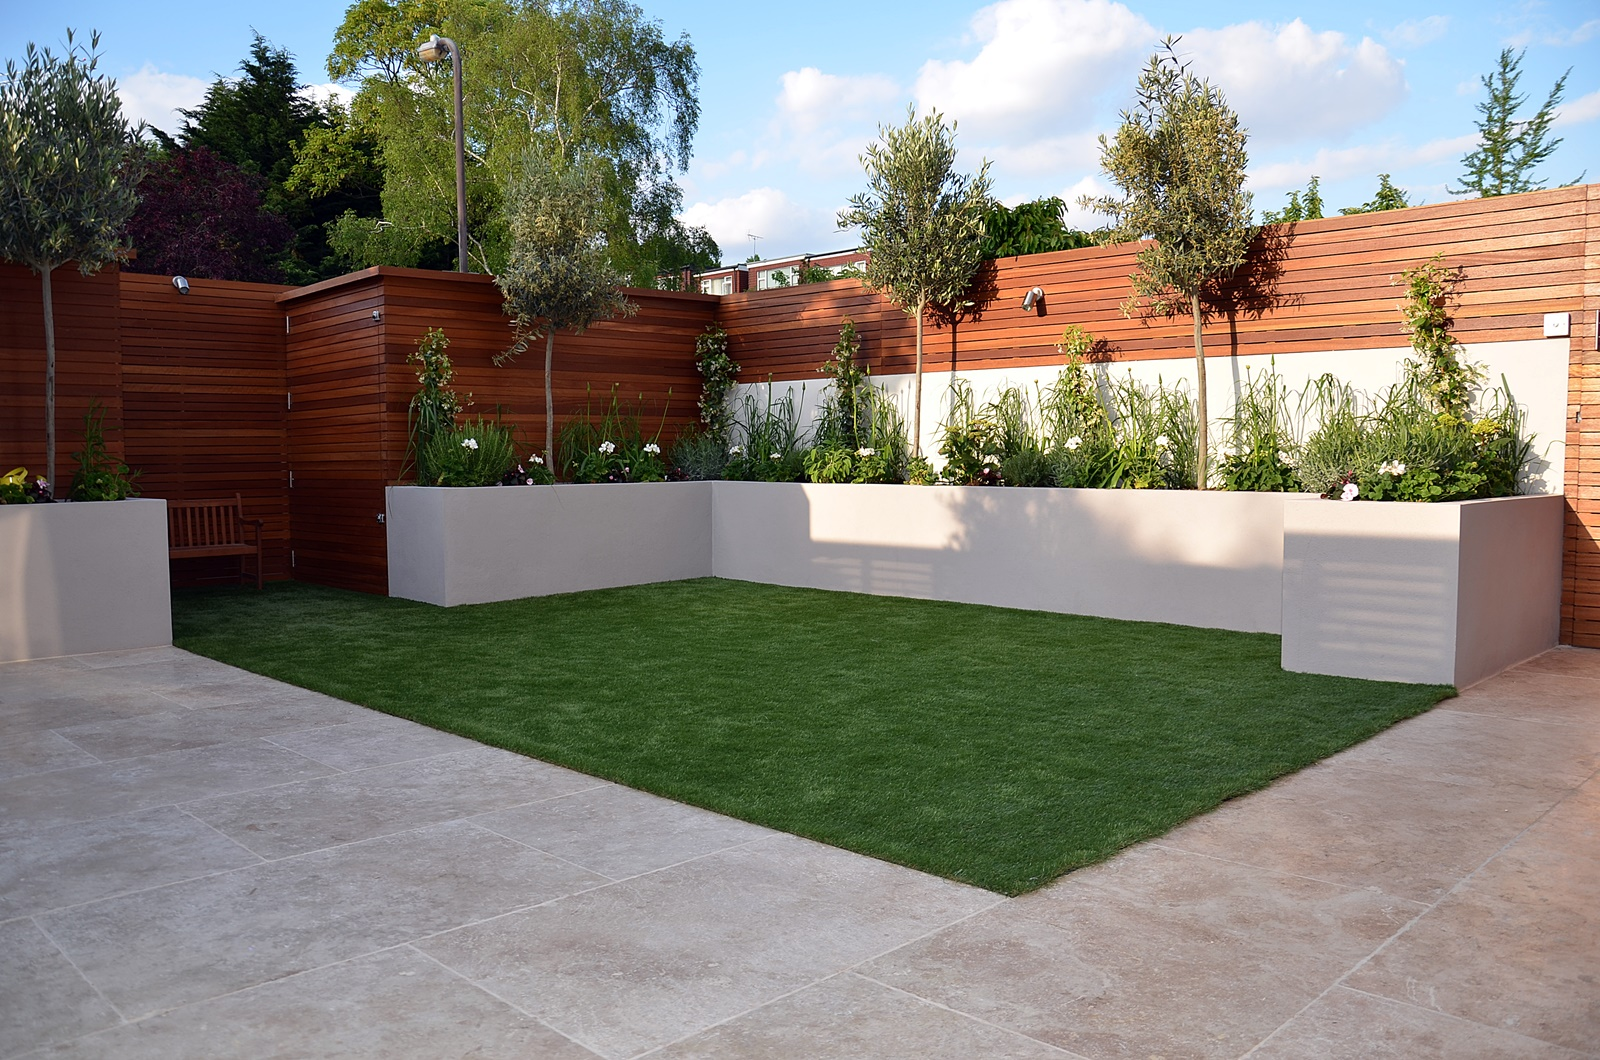 Modern garden design fulham chelsea clapham battersea for Garden design plans uk